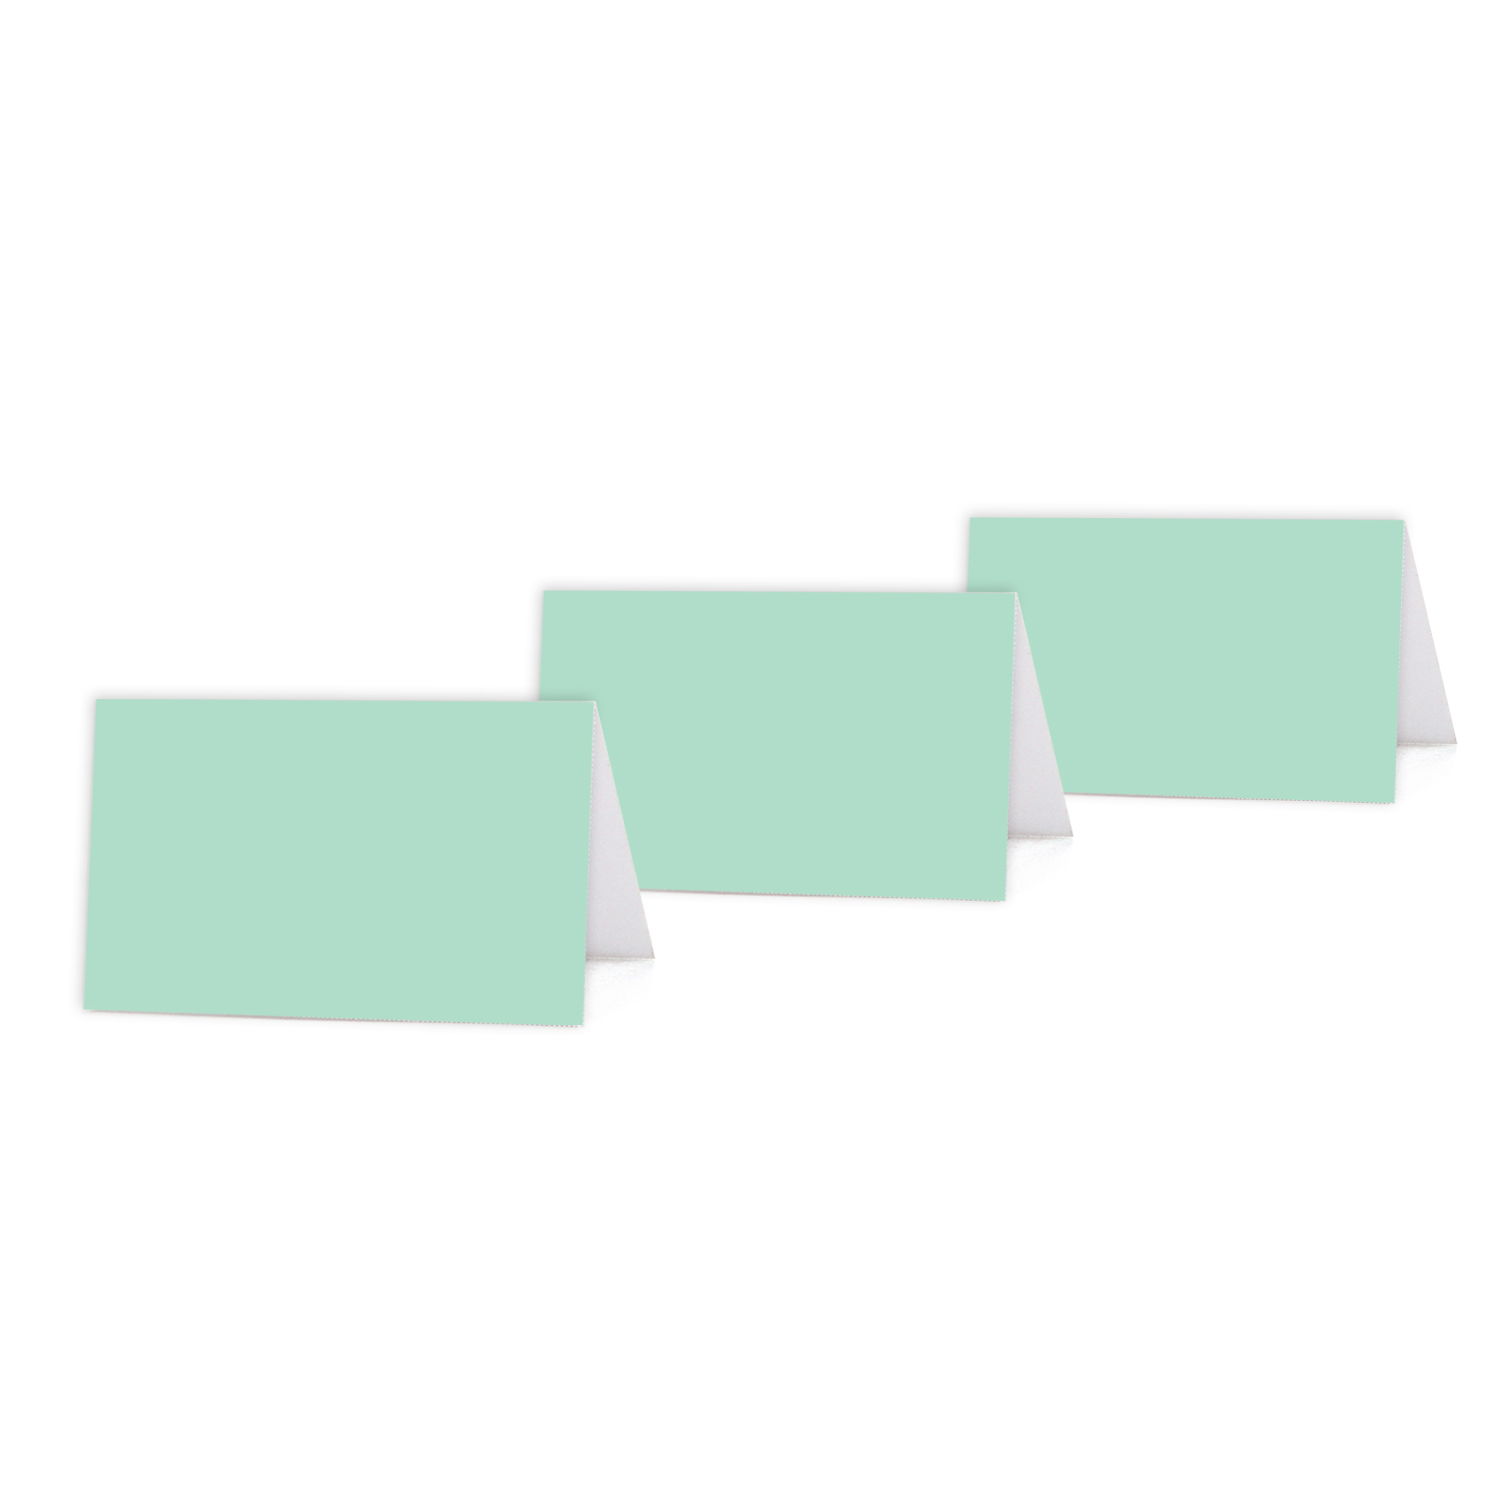 image about Printable Placecards known as Mint Environmentally friendly Coloration Blank Desk Tent Printable Vacation spot Playing cards, 20-Pack